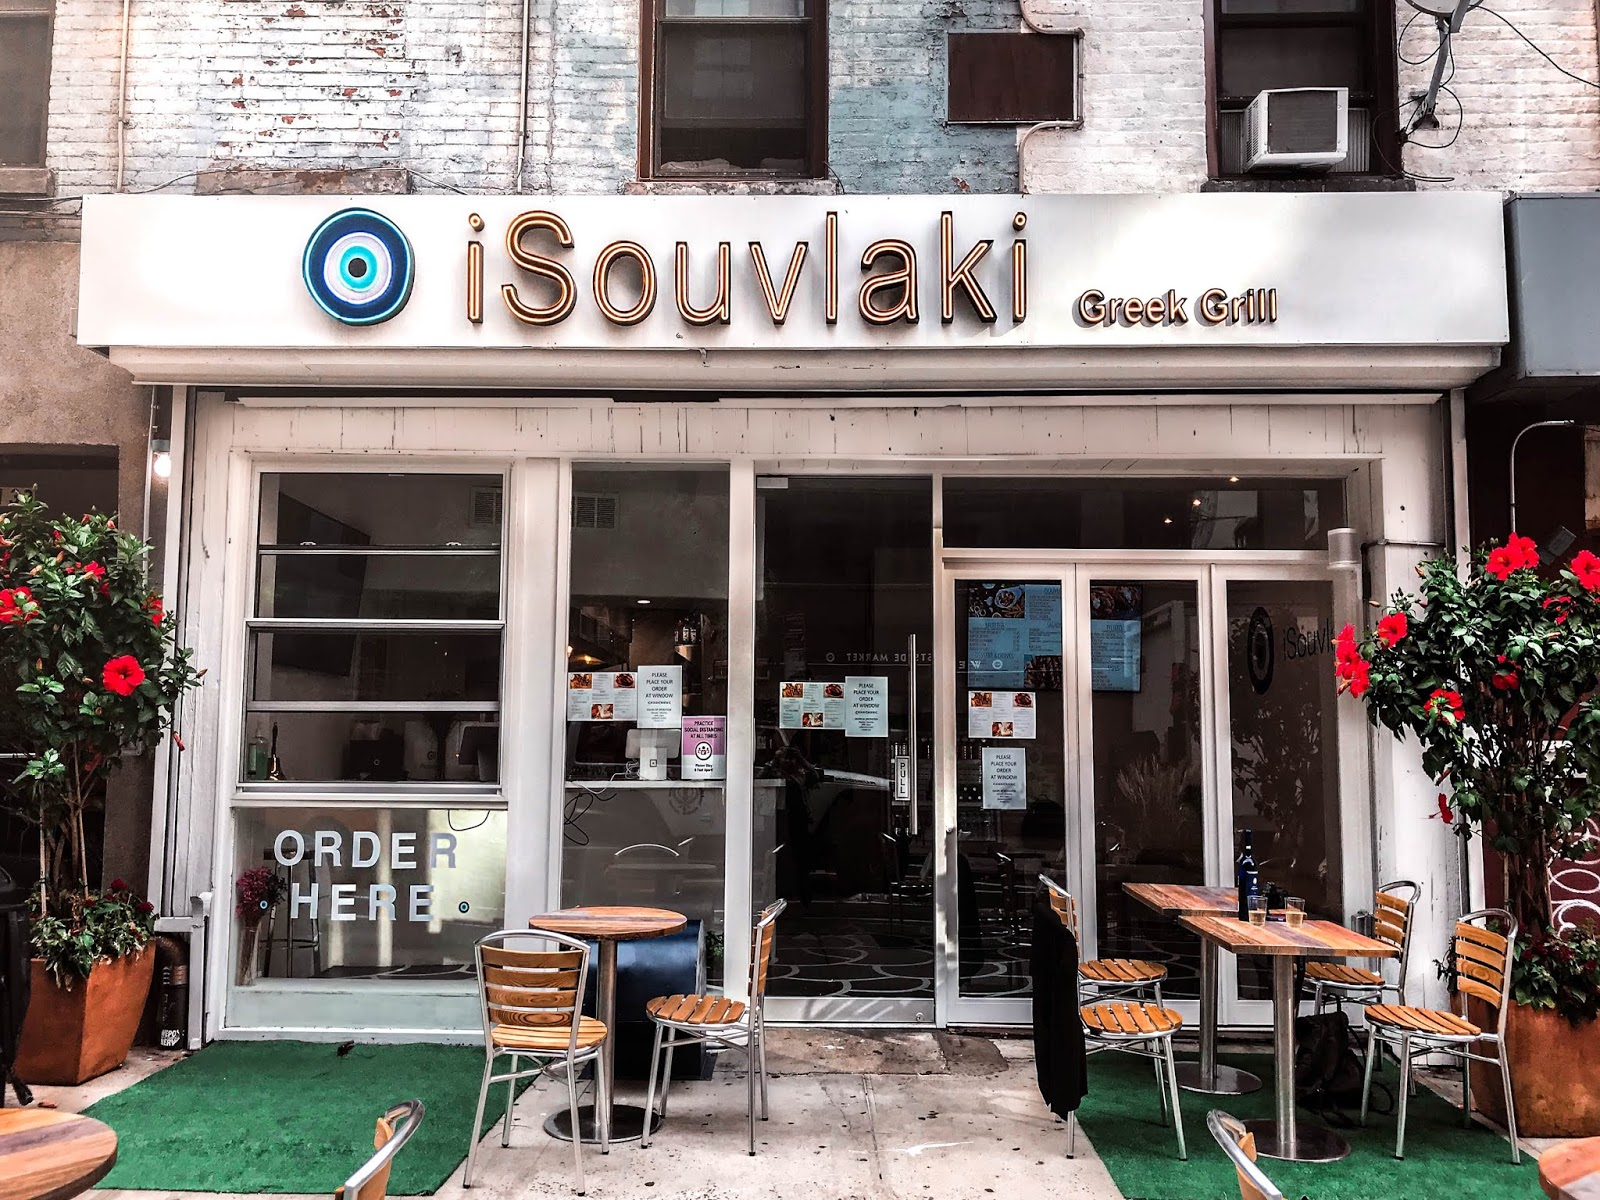 The Best East Village NYC Restaurant, iSouvlaki